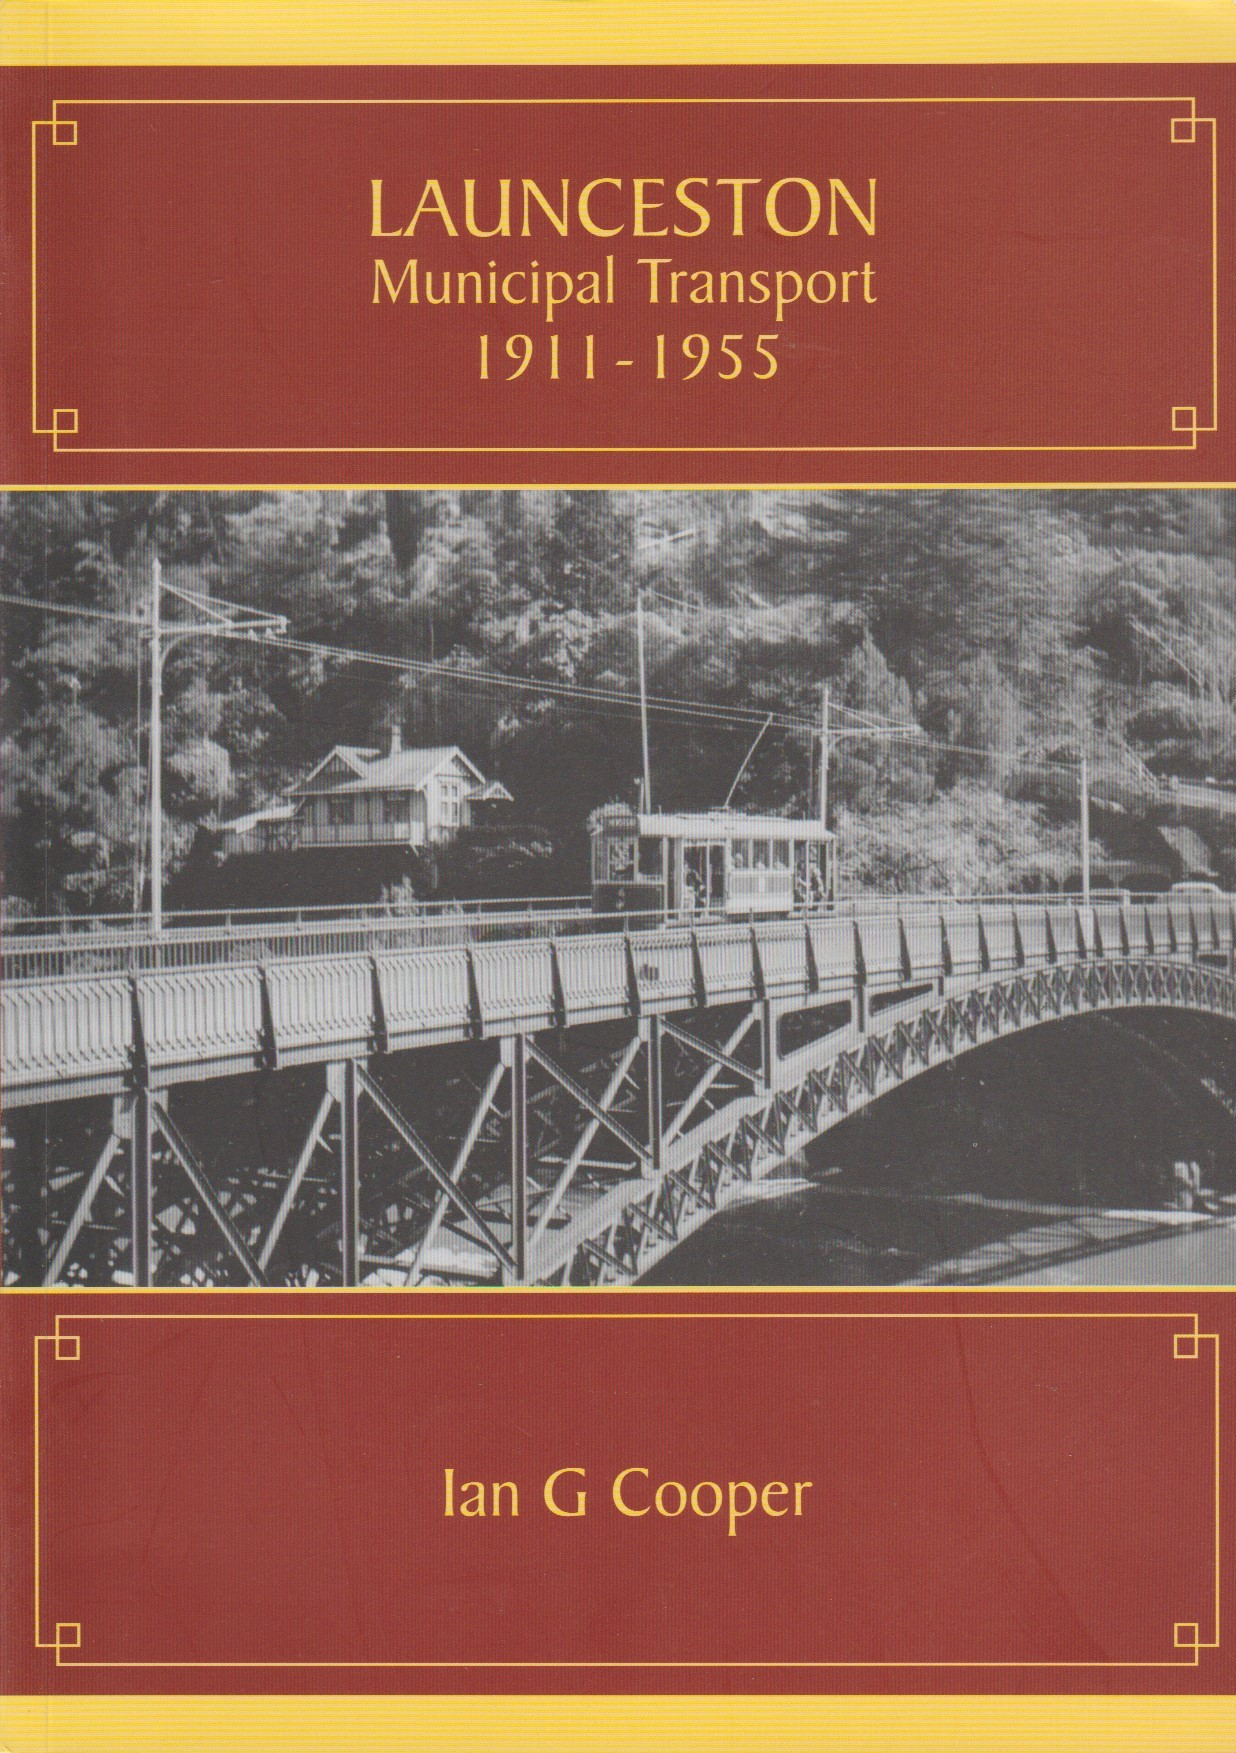 Launceston Municipal Transport 1911 - 1955